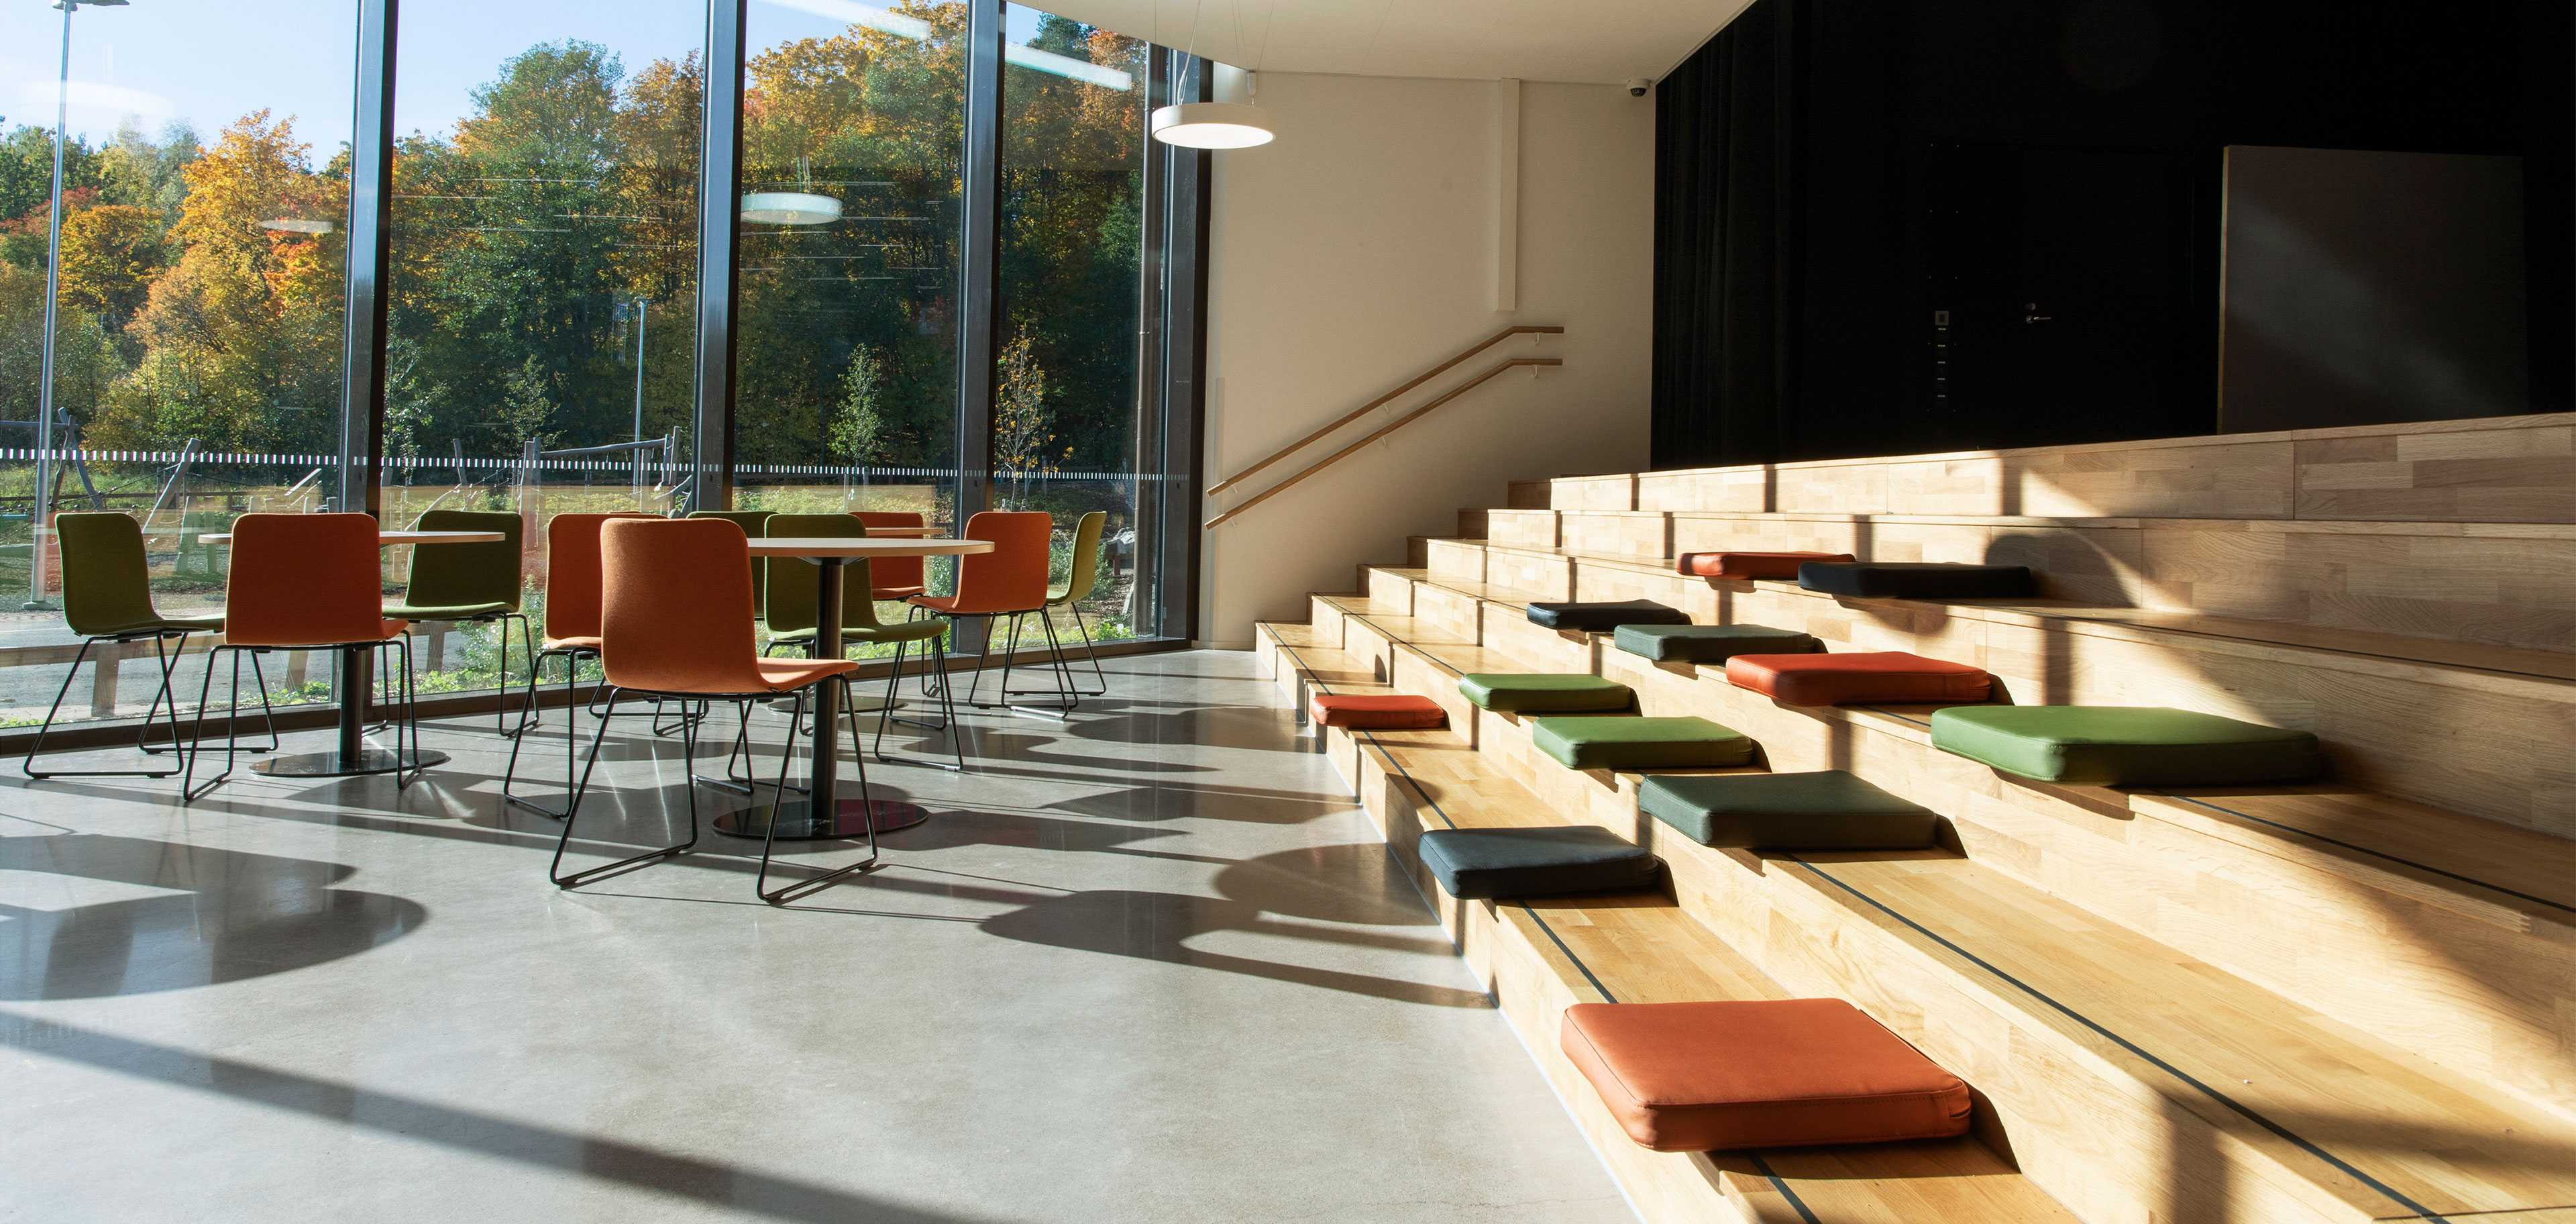 Martela's Sola chairs, Spot tables and Puffet seat cushions at Syvälahti Community Centre in Turku, Finland